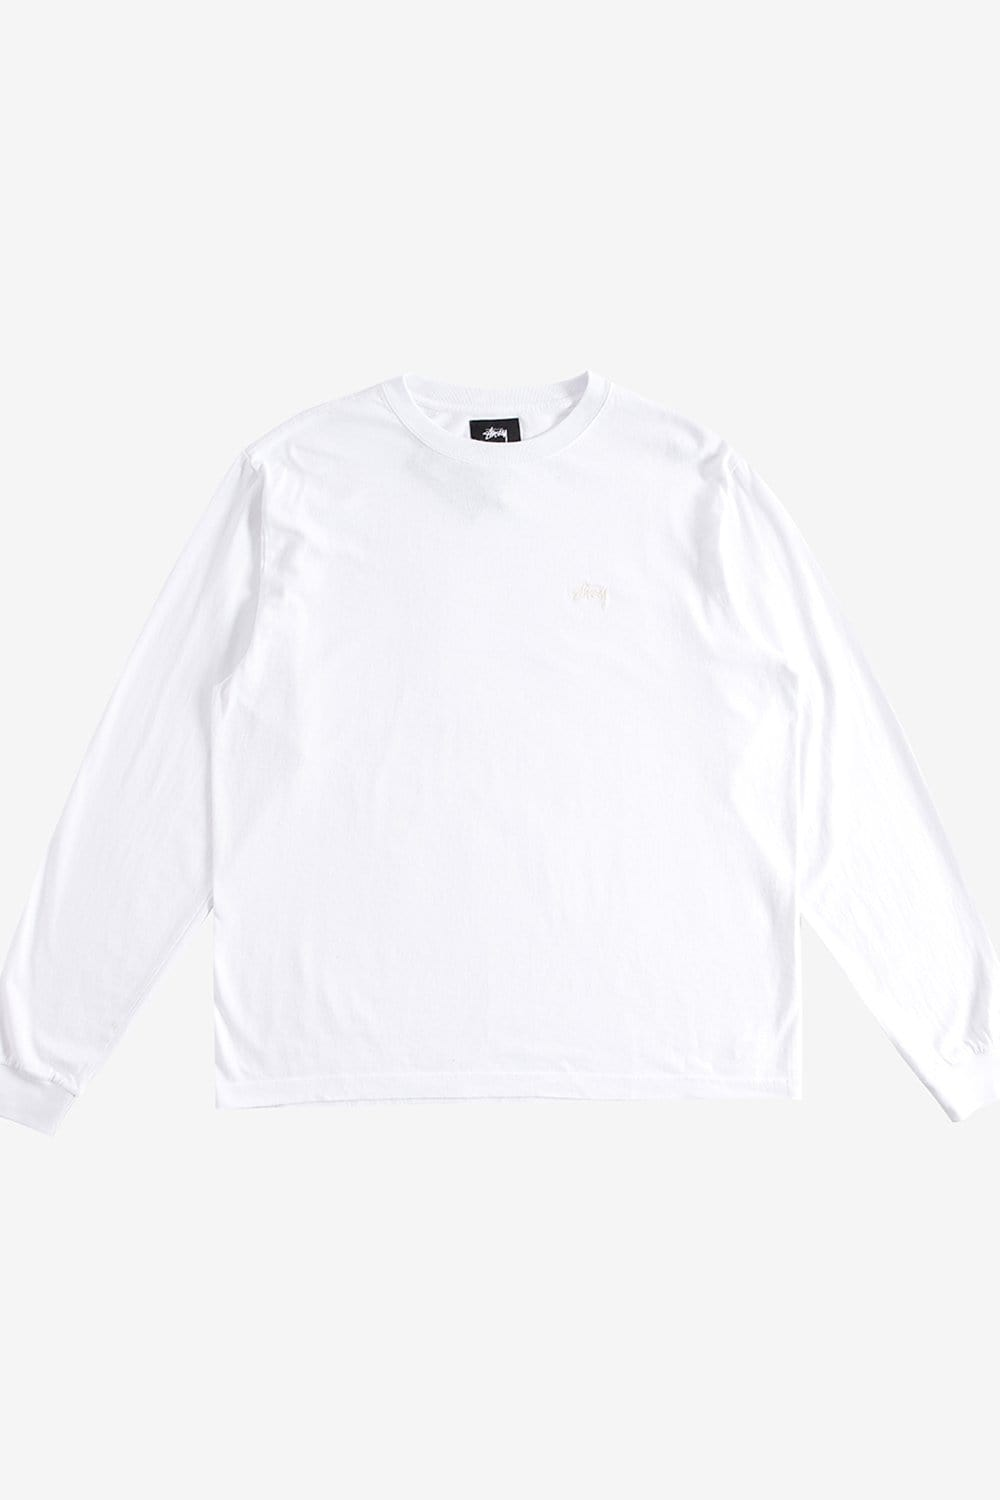 Stussy Apparel Stock Logo Long Sleeve Crew White